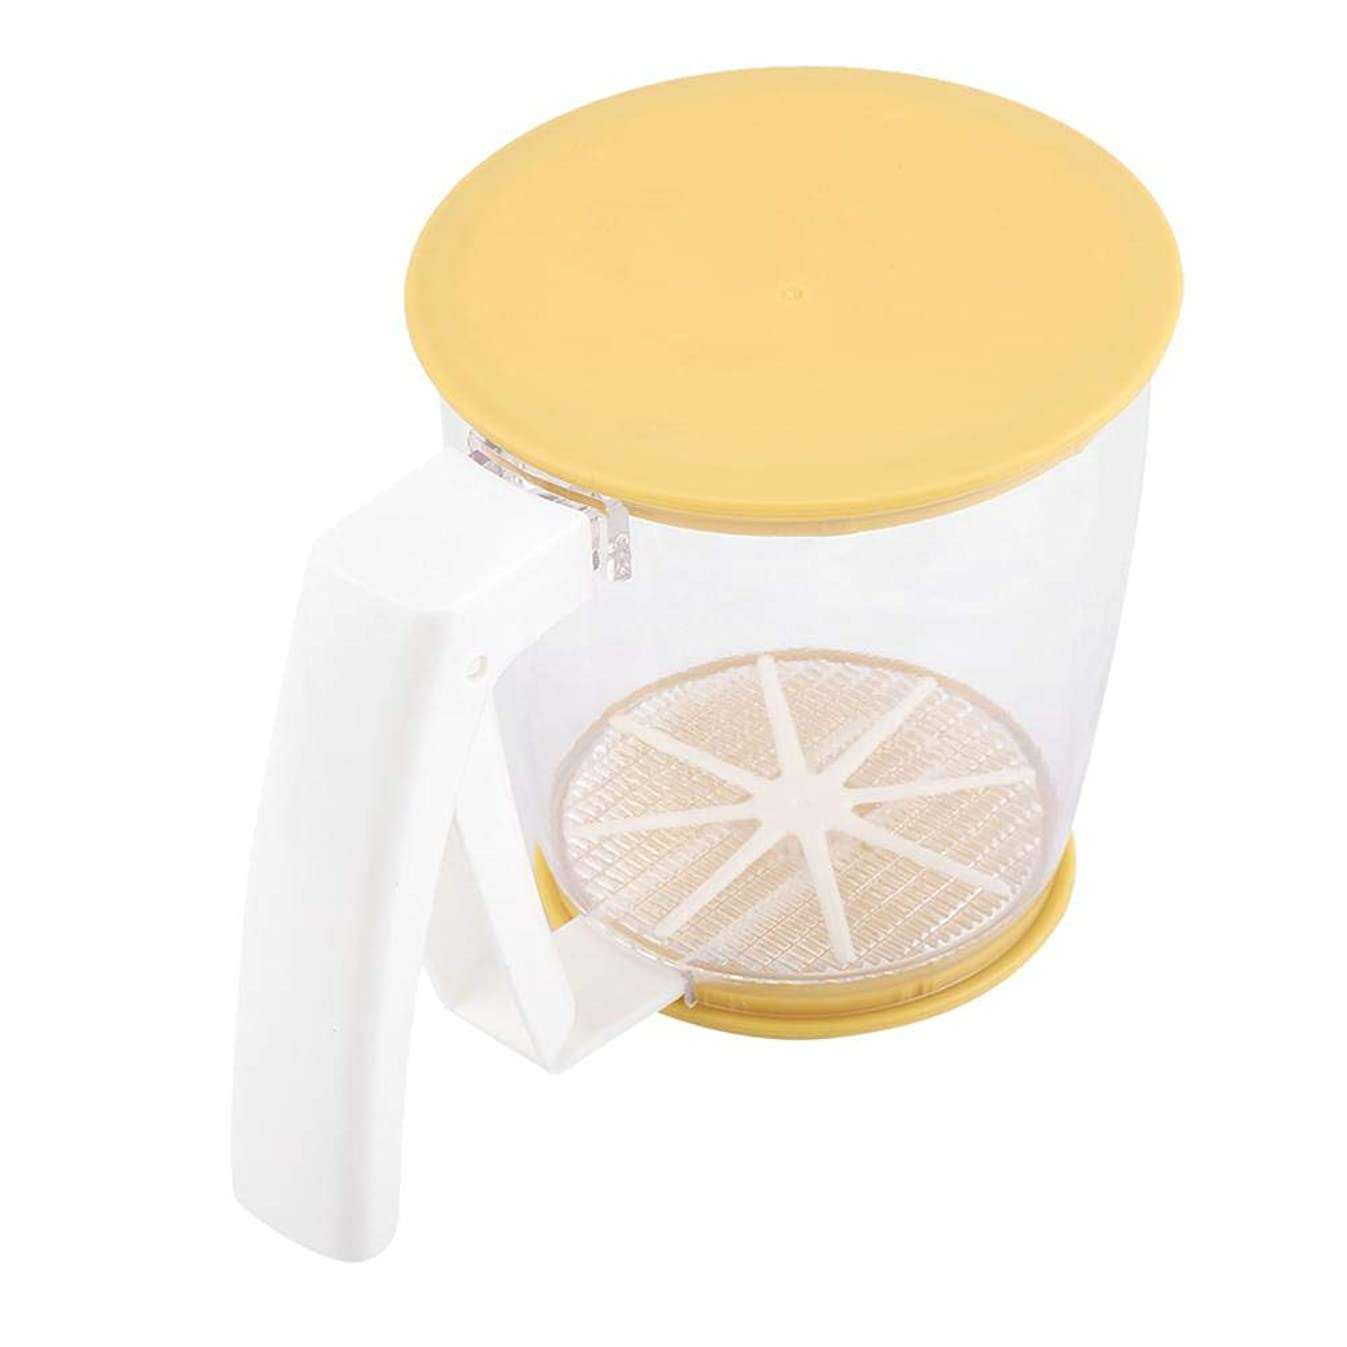 Flour Sifter Hand-Held Cup Flour Sifter Strainer Powder Mesh Sieve Baking Supplies Tools with Lid at The Bottom Sieve Flour